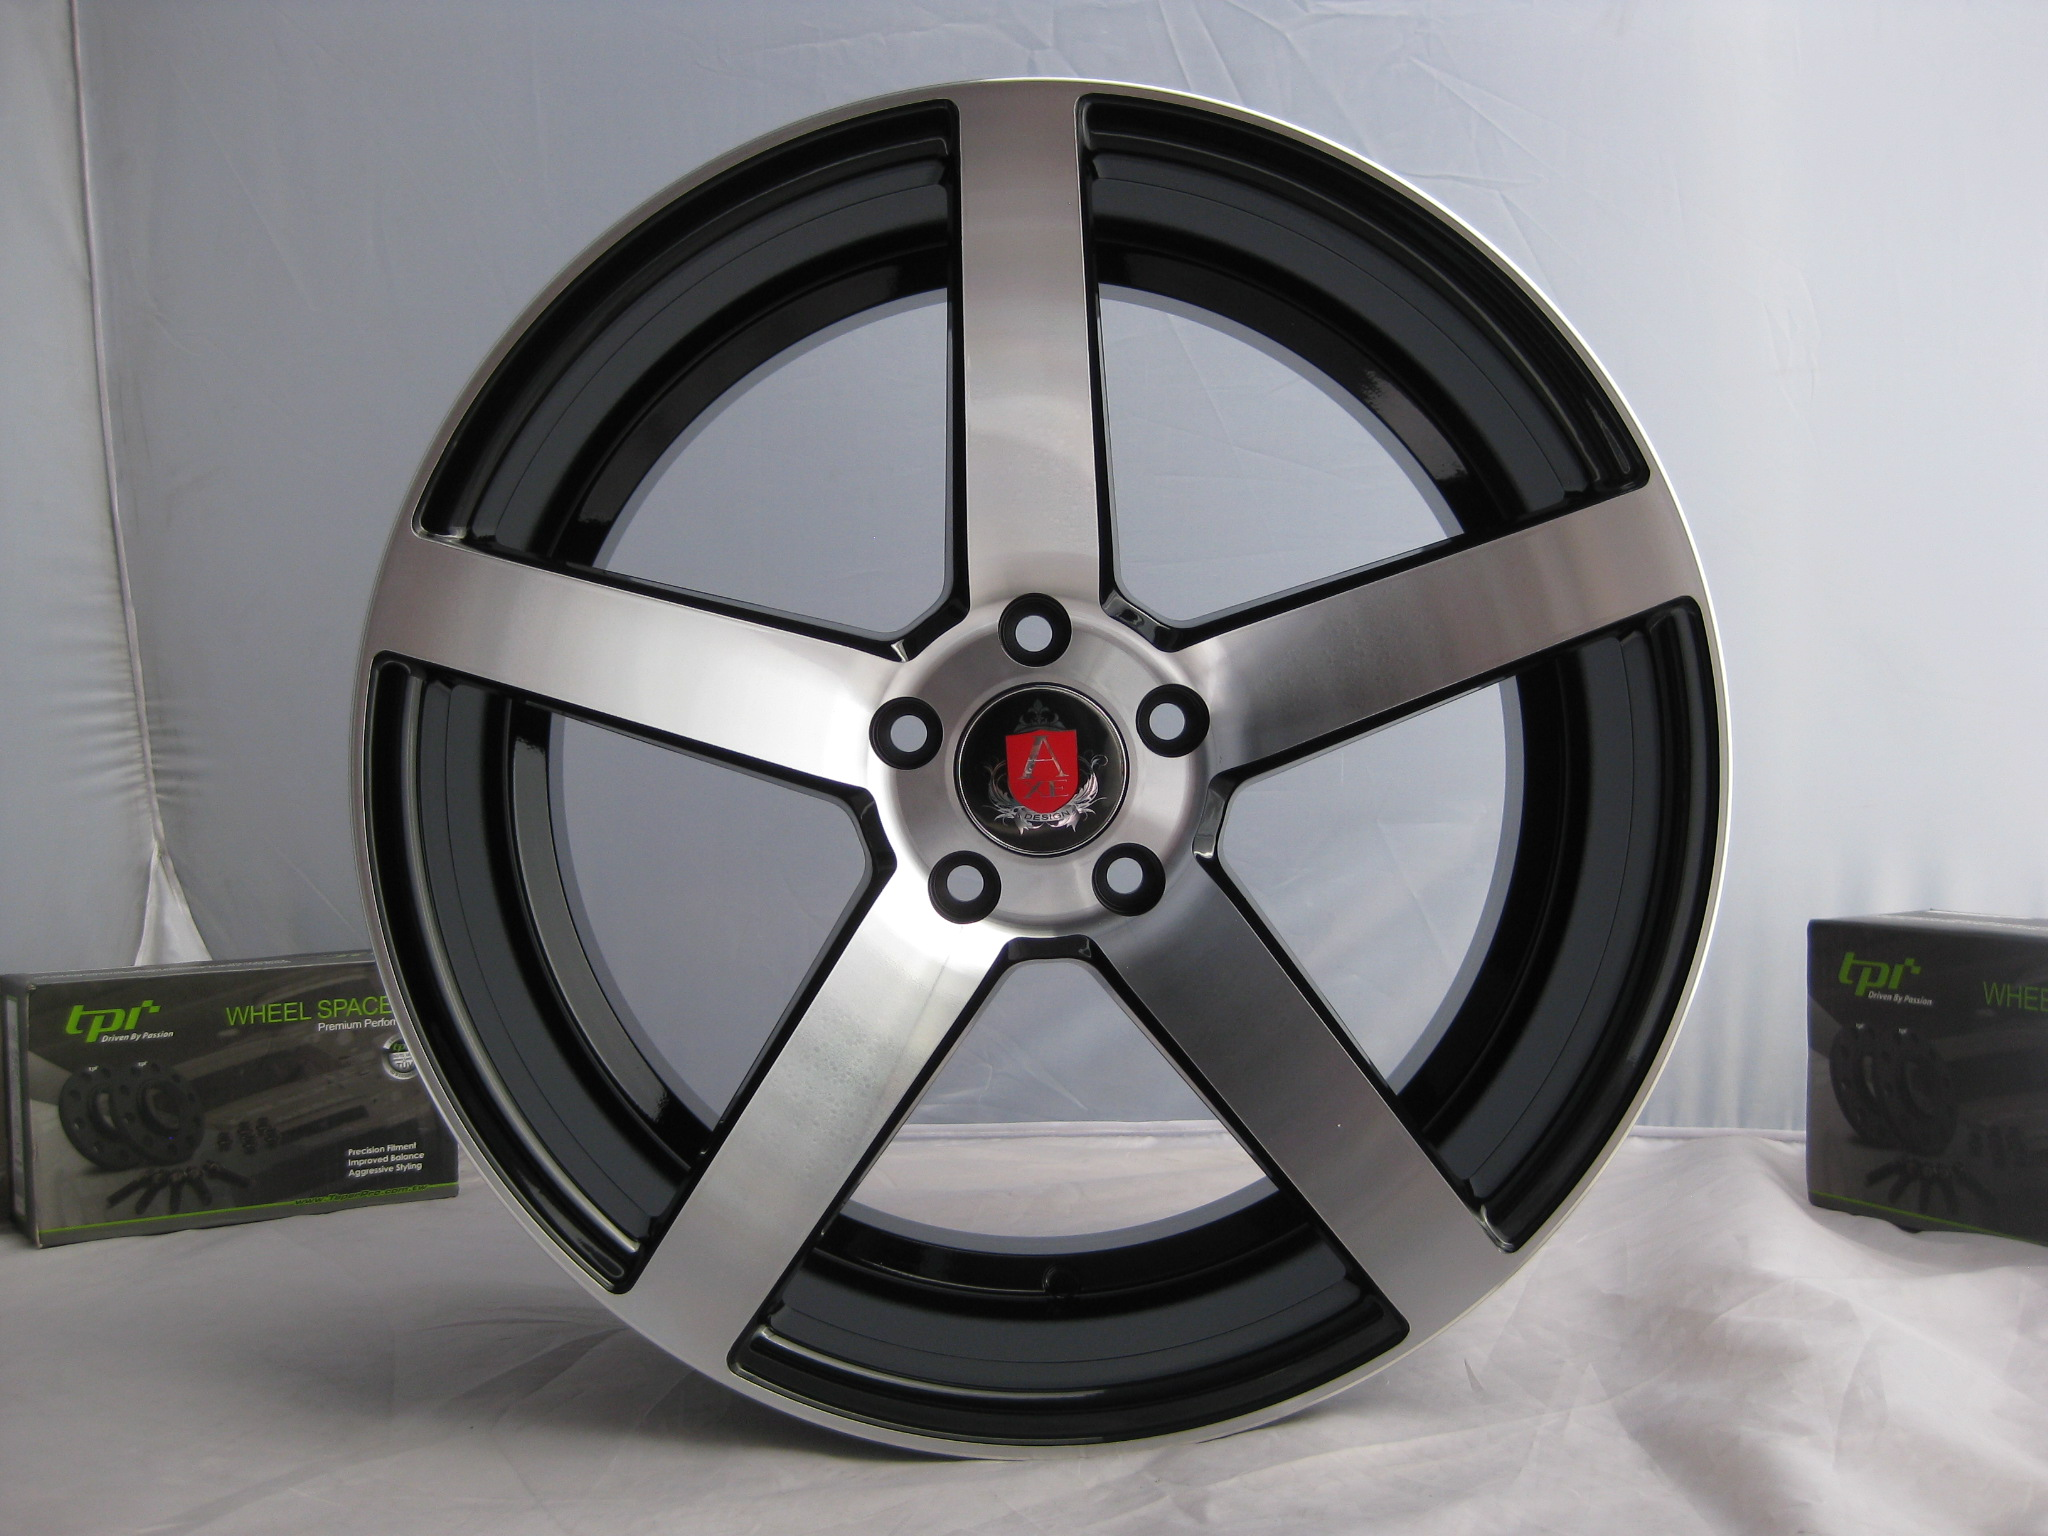 "NEW 19"" AXE EX18 DEEP CONCAVE ALLOY WHEELS IN GLOSS BLACK WITH POLISHED FACE, DEEP DISH, WIDER 9.5"" REAR 44/40"